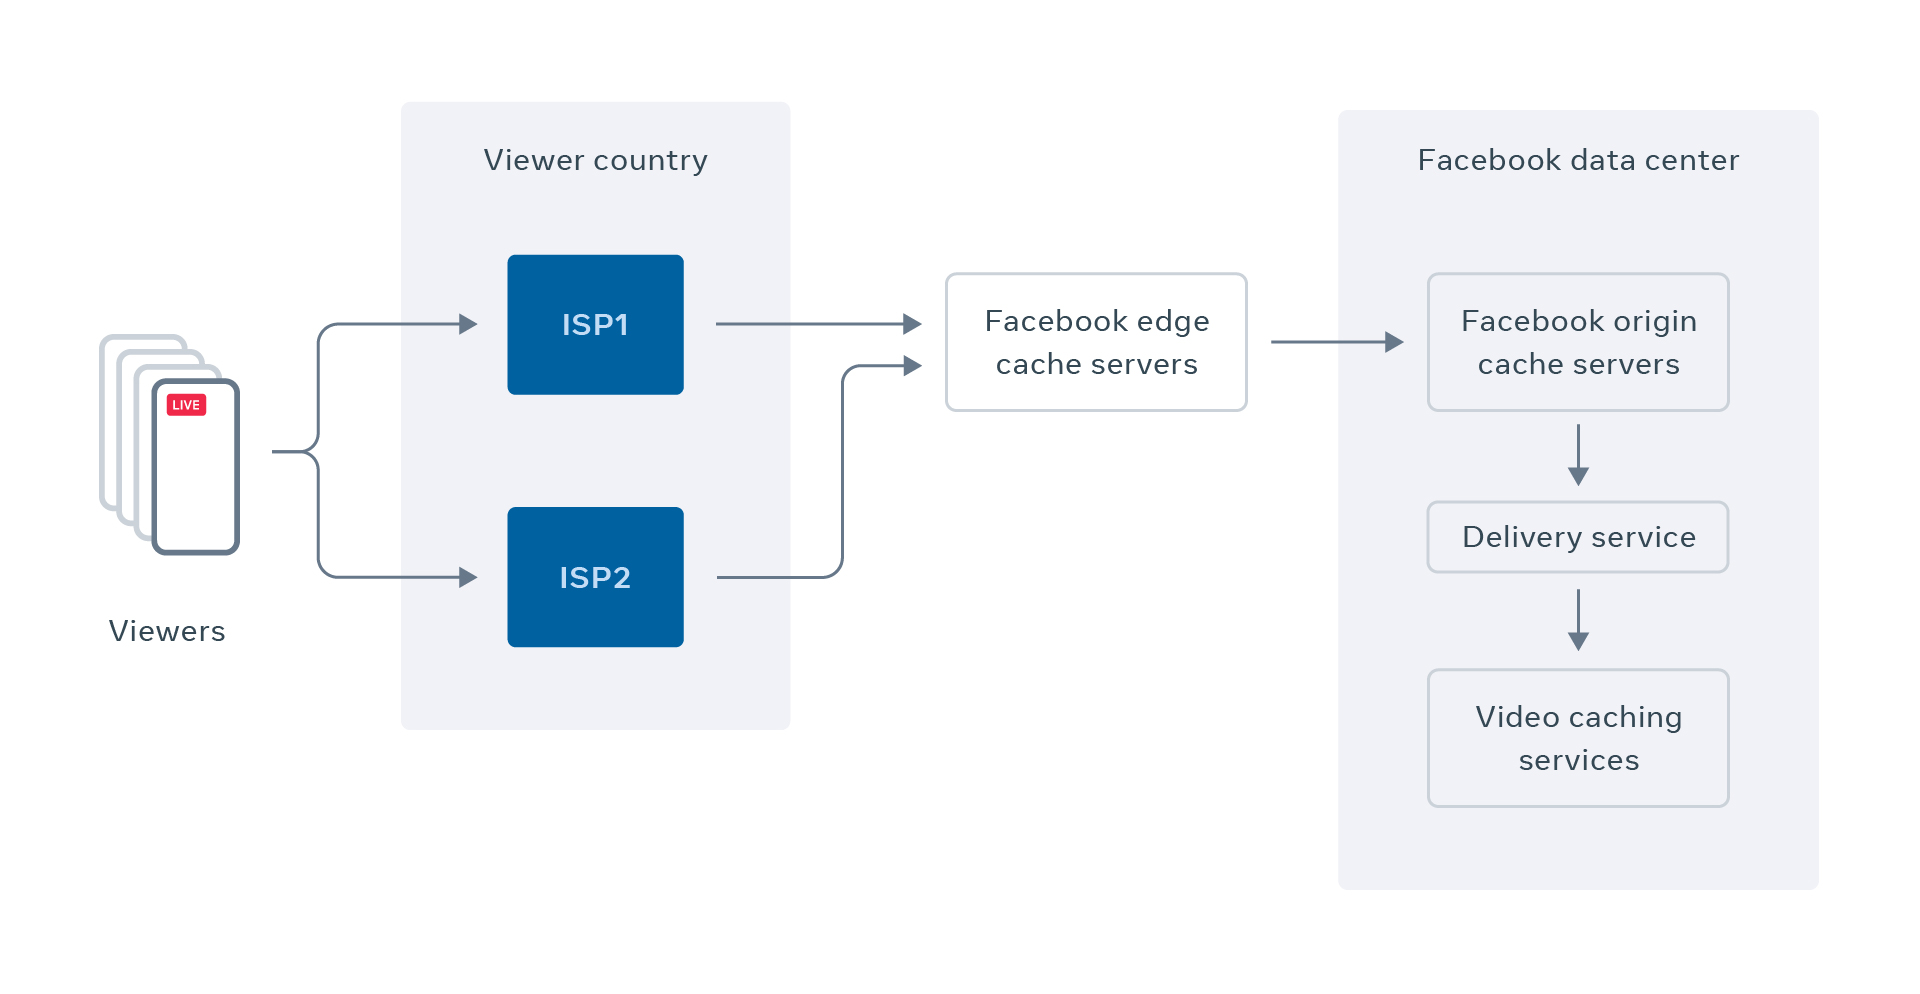 We have built robust infrastructure to protect our back-end services from thundering herd issues by developing novel forms of request coalescing and cache sharding that allow us to reliably deliver video content while ensuring realtime playback.